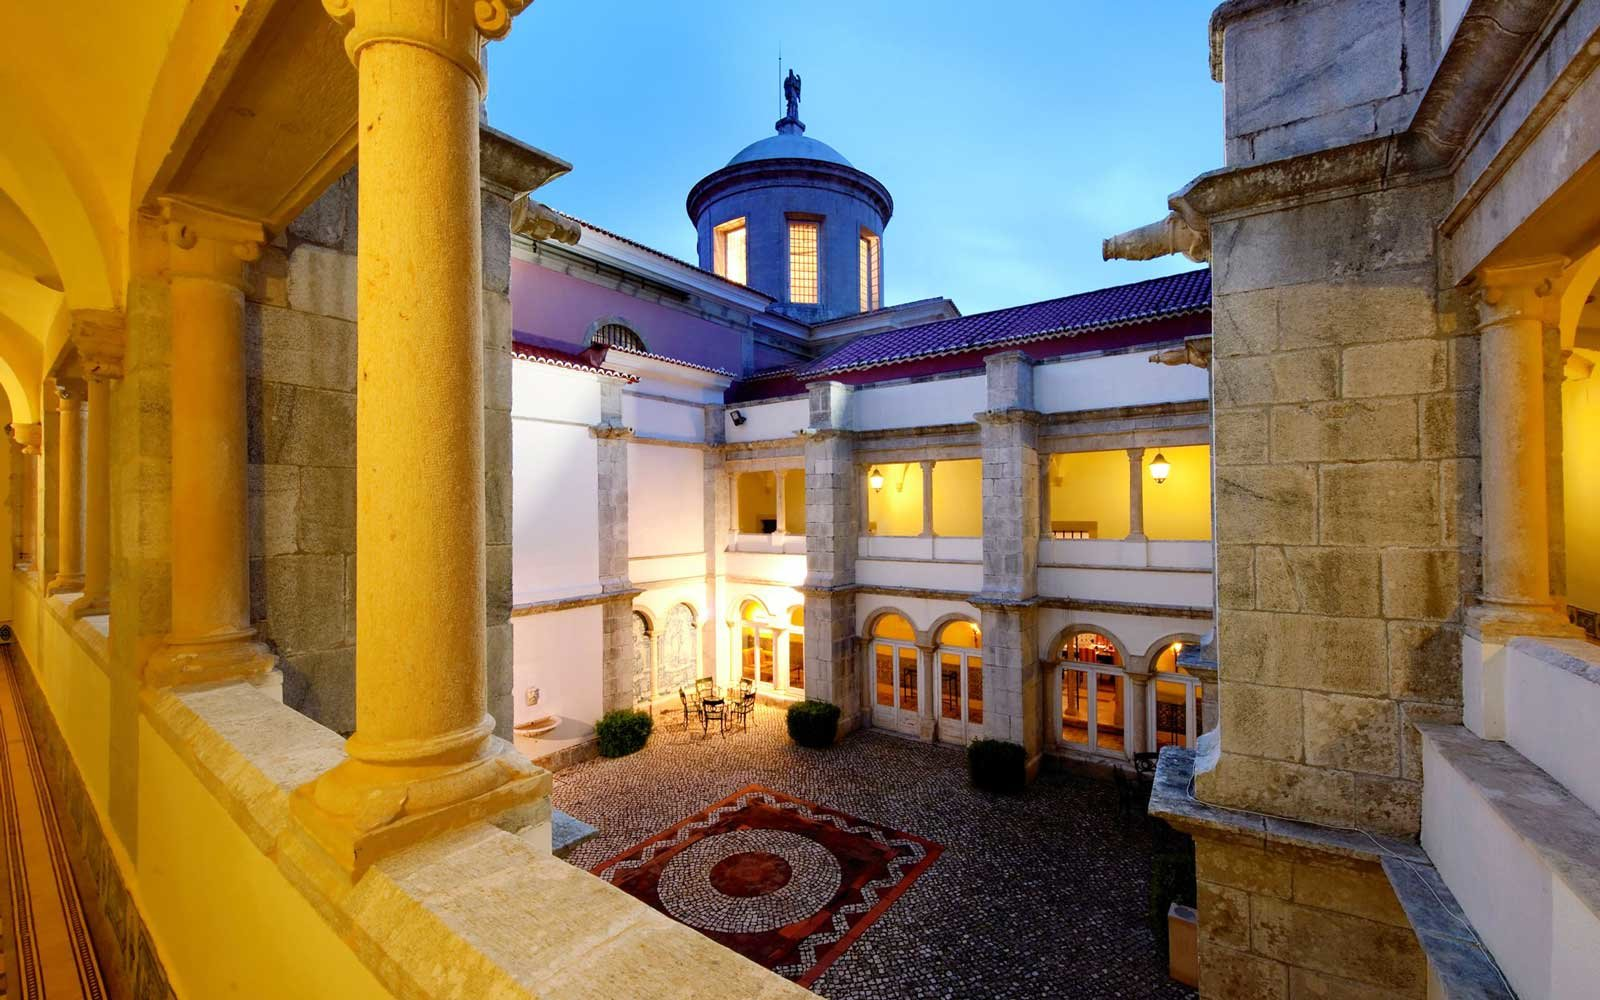 2. Penha Longa Resort, Sintra, Portugal